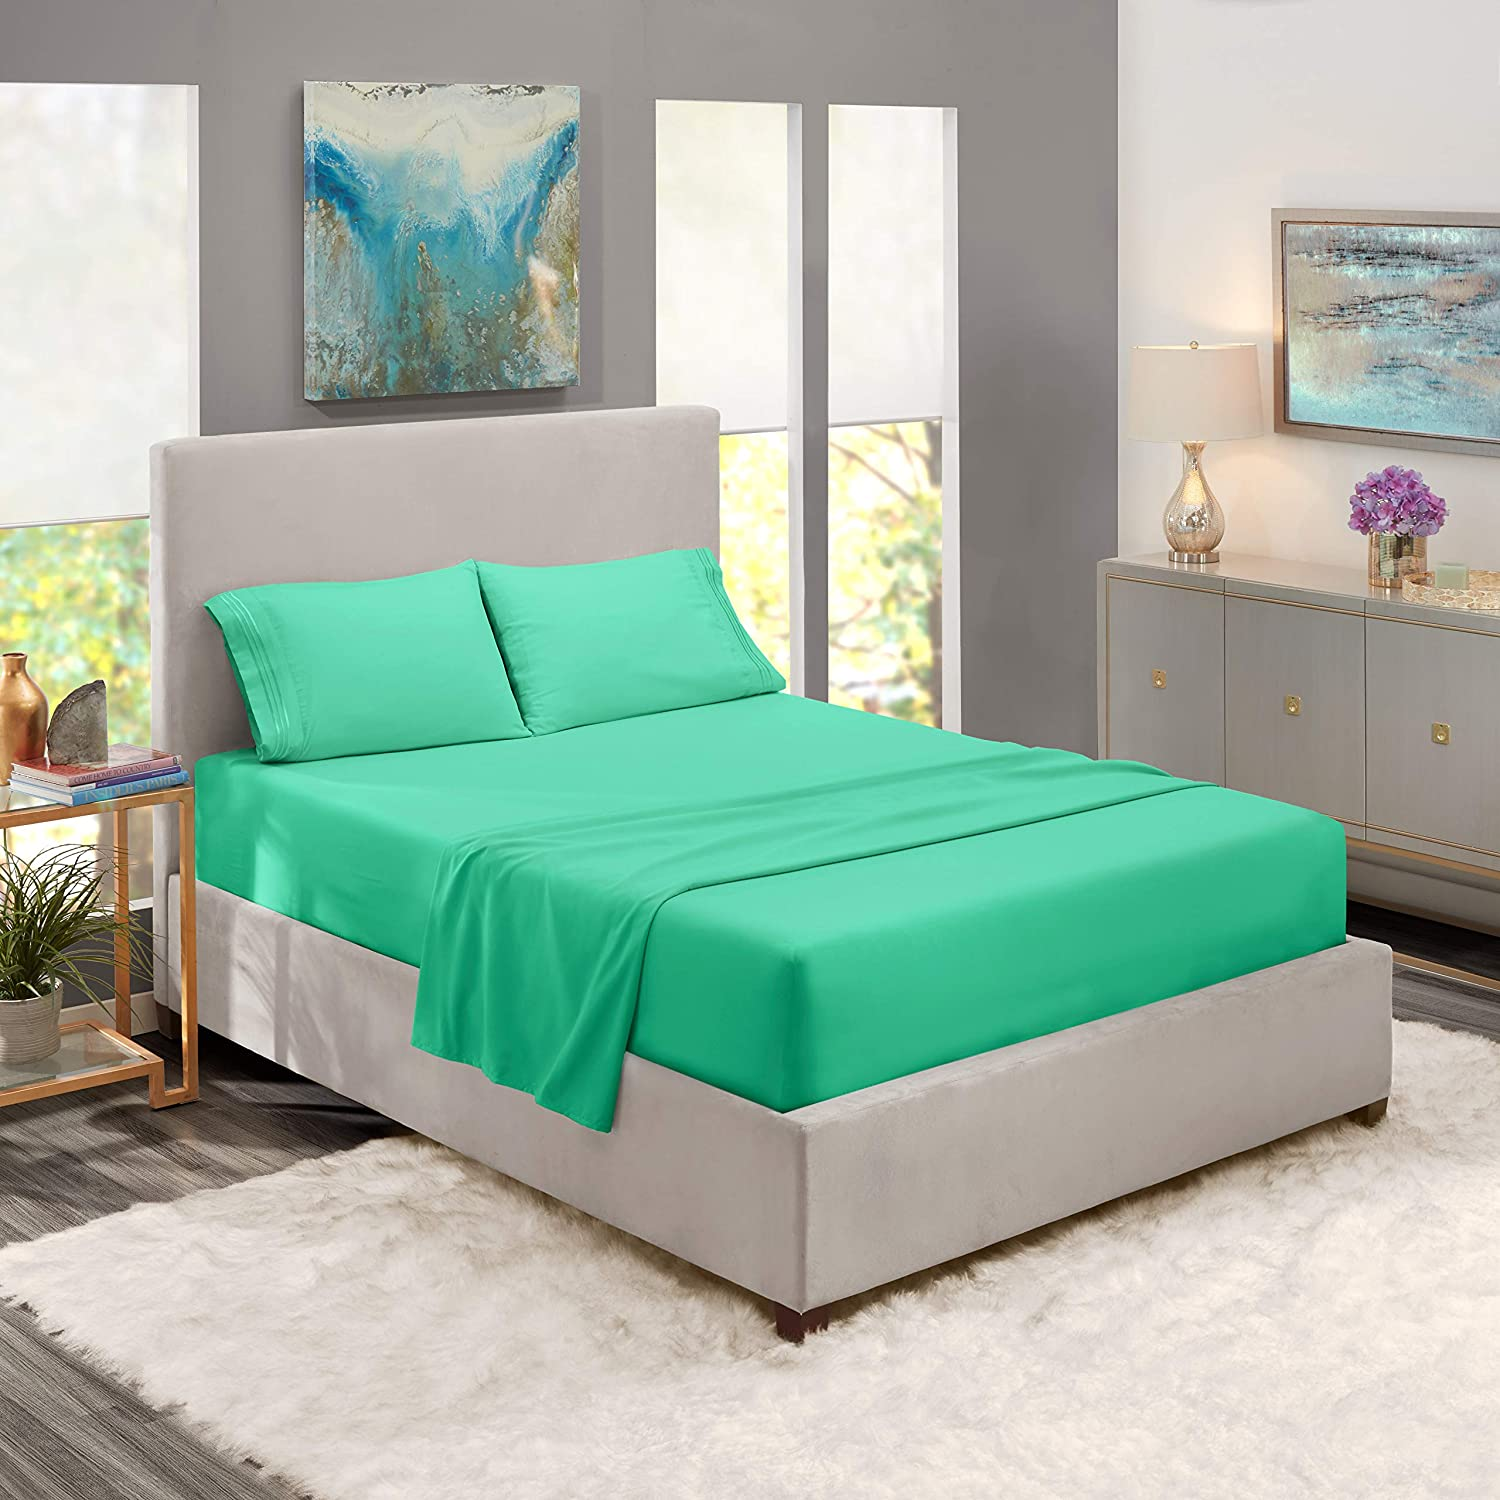 Nestl Bedding Soft Sheets Set – 4 Piece Bed Sheet Set, 3-Line Design Pillowcases – Easy Care, Wrinkle Free – Good Fit Deep Pockets Fitted Sheet – Free Warranty Included – Queen, Mint